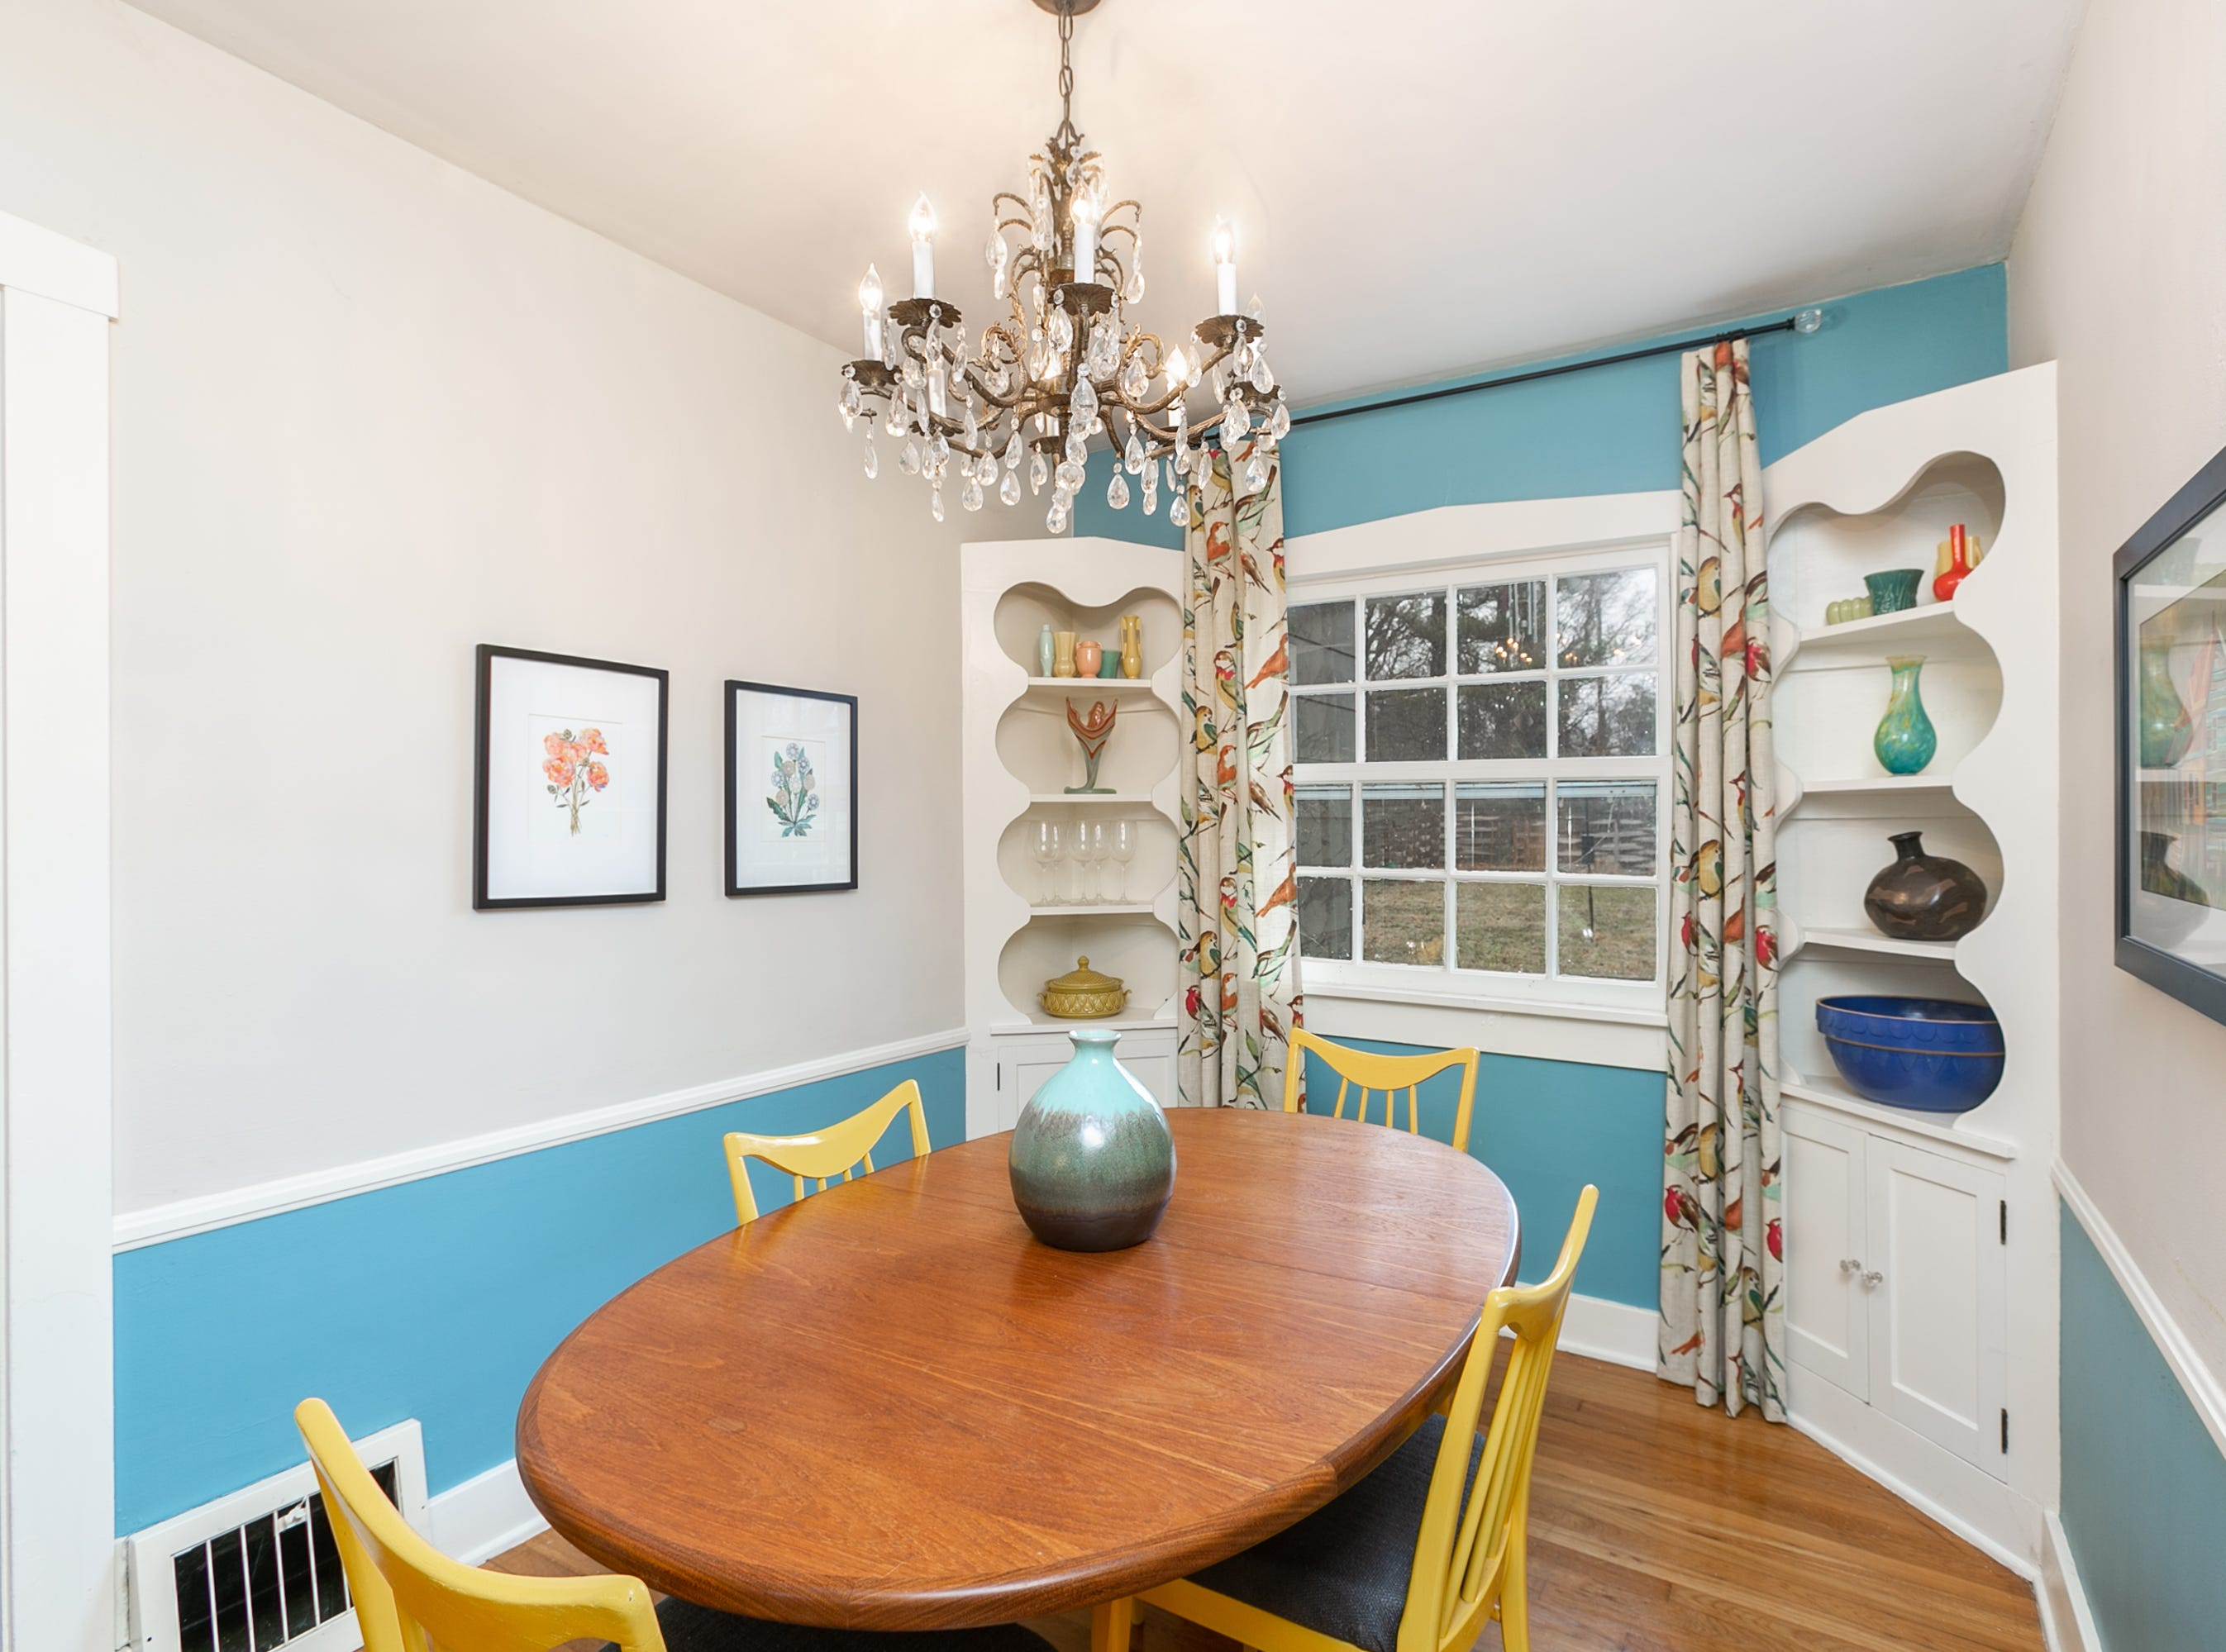 The dining room is painted with a vibrant turquoise accent. The yellow chairs and corner cabinet décor provide additional pops of color.